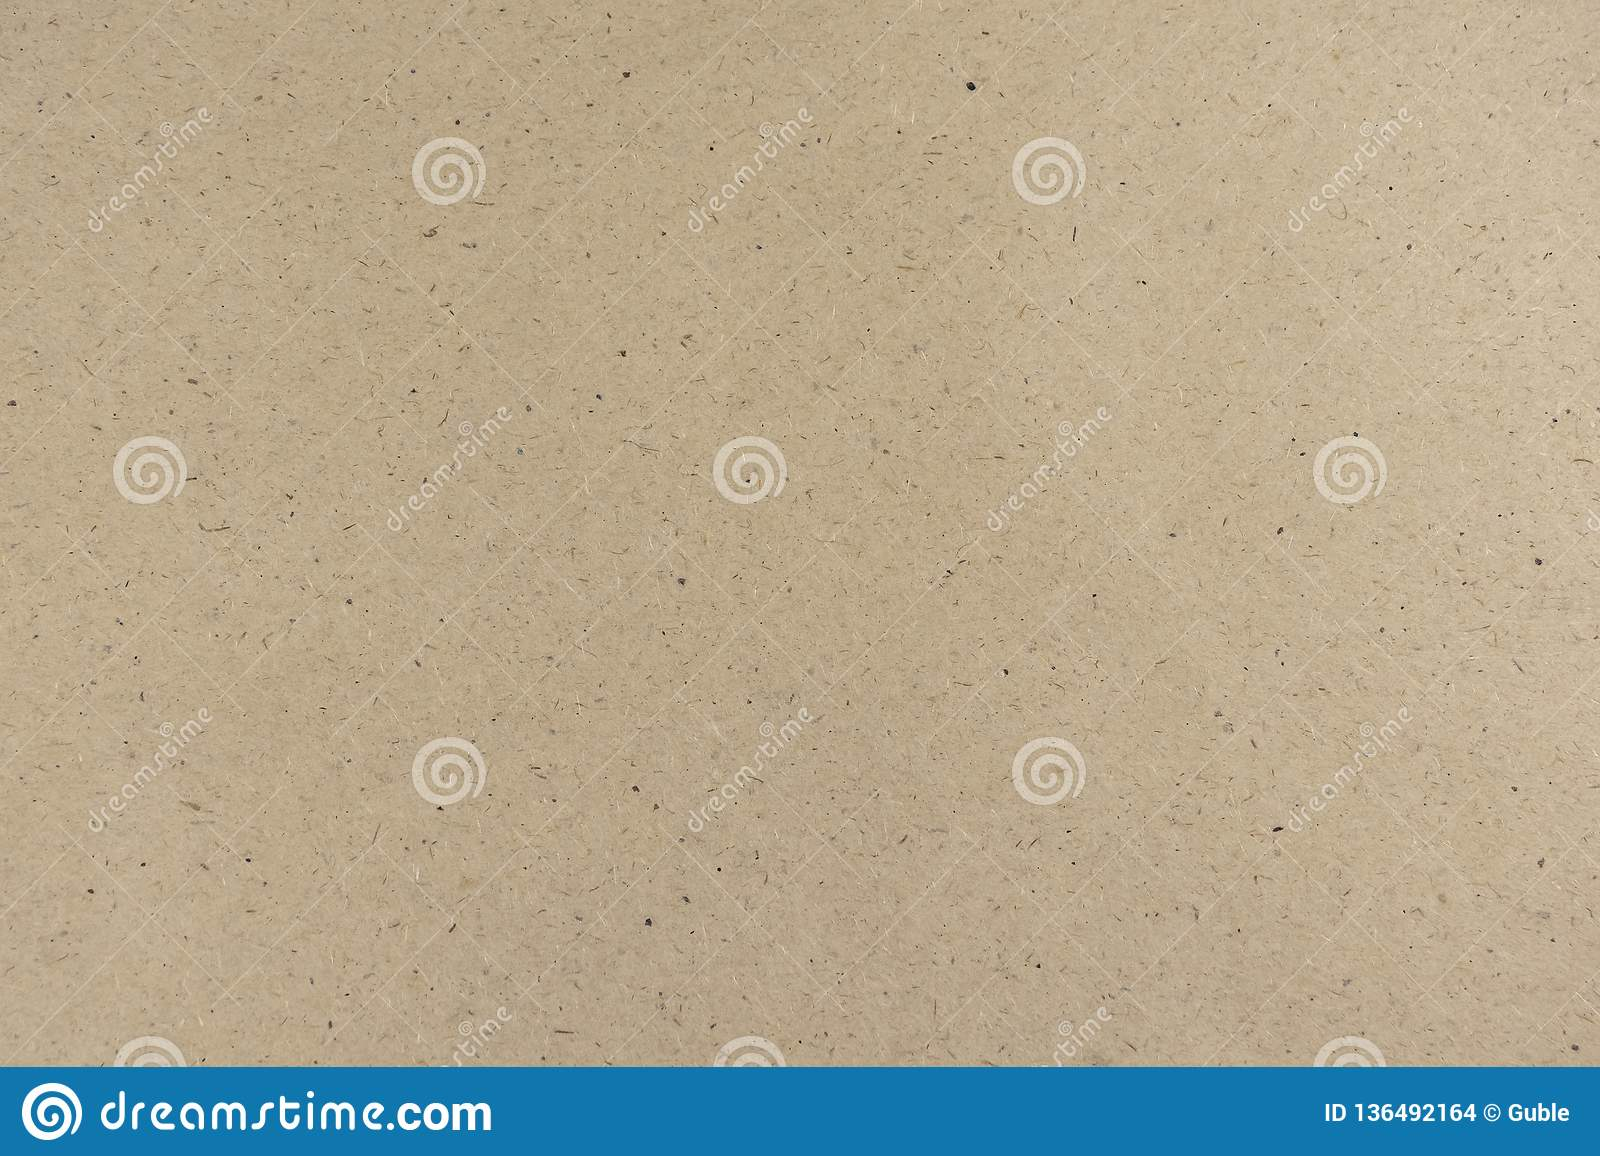 Old brown paper texture. Paper background